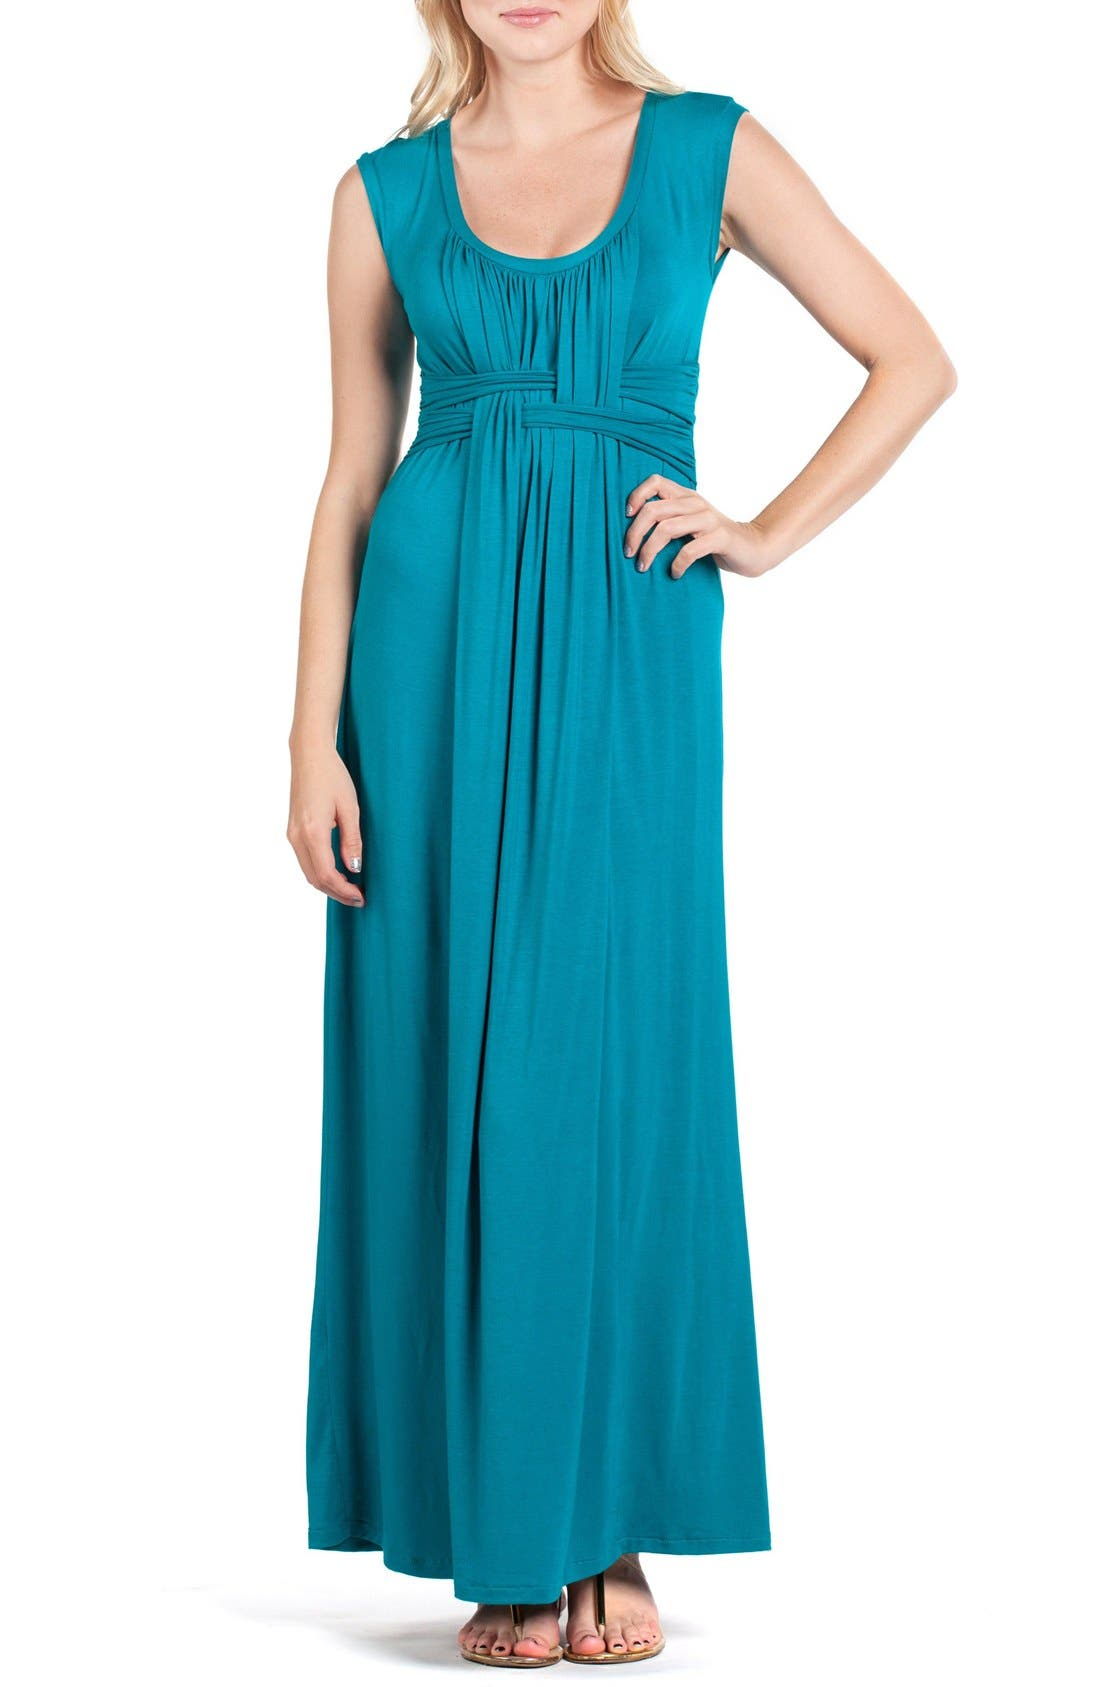 Savi Mom Athens Maternity/Nursing Maxi Dress